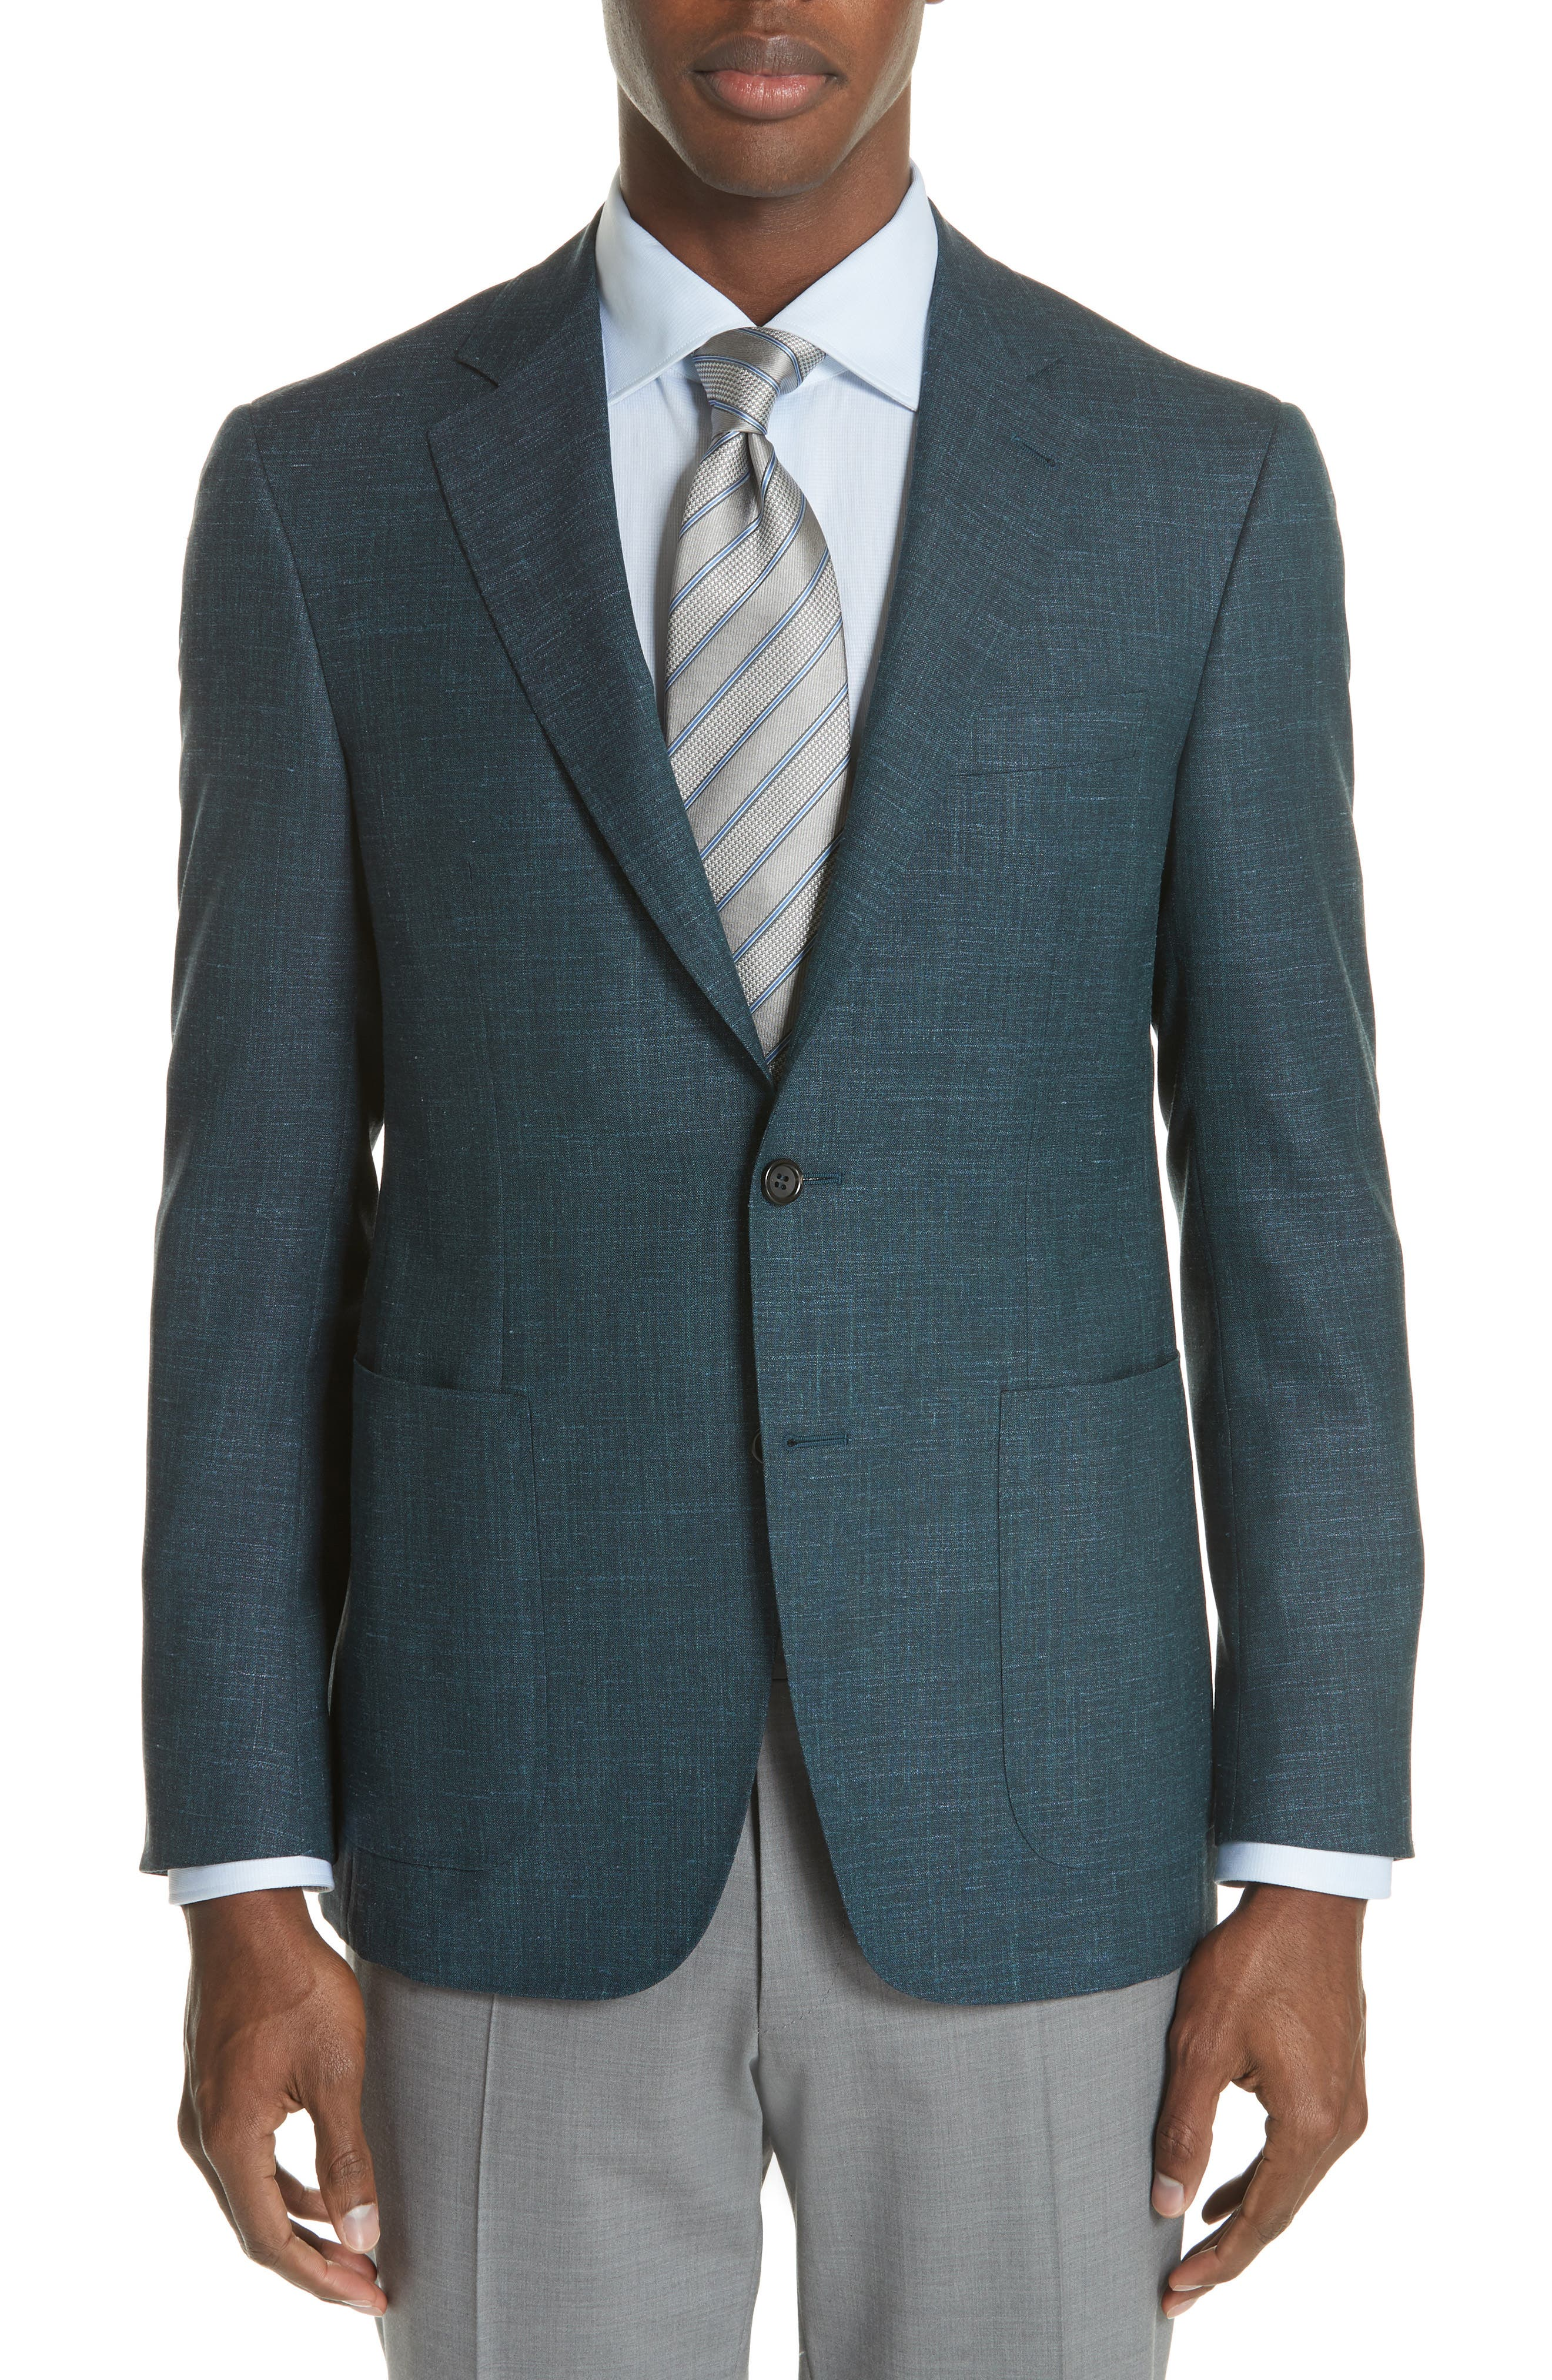 Classic Fit Wool Blend Blazer,                         Main,                         color, Green